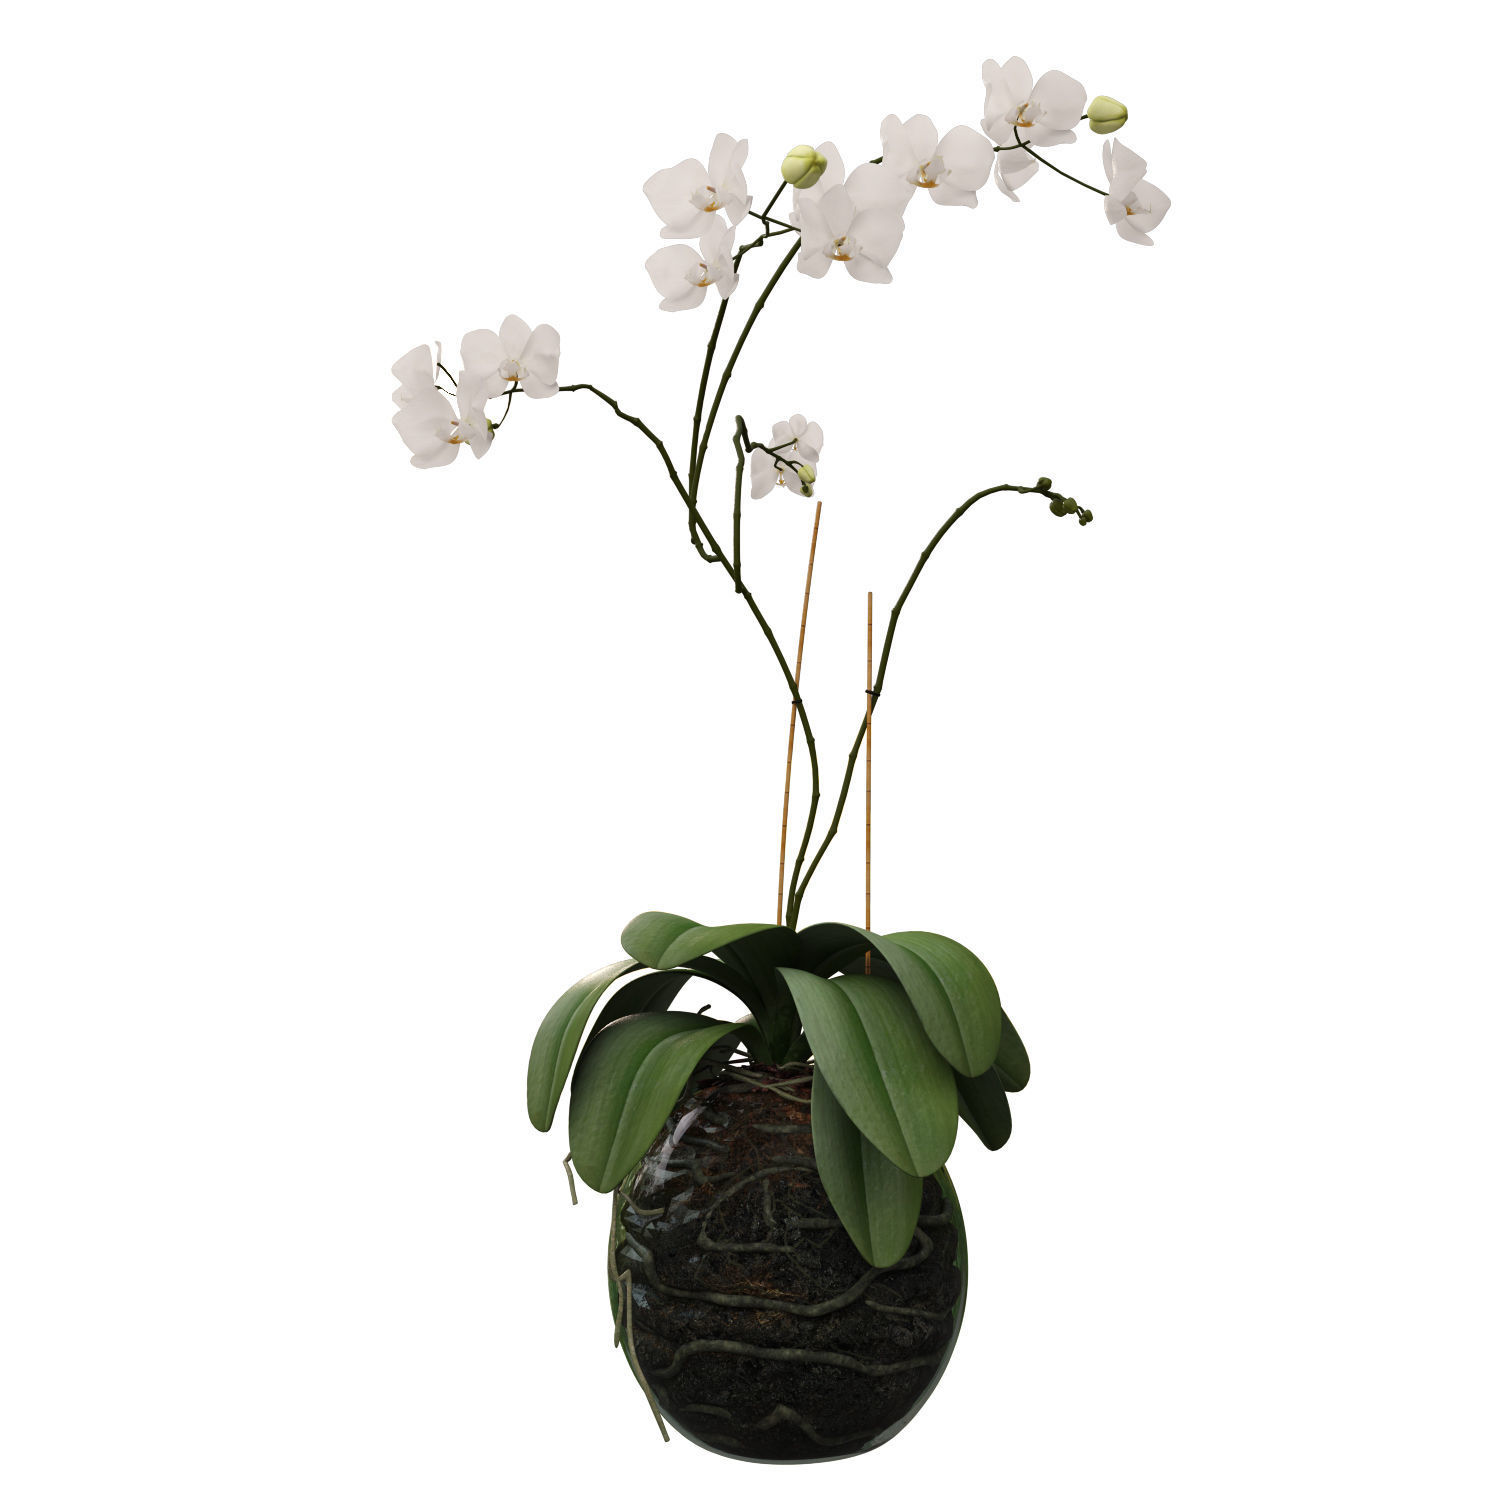 Orchid in a glass flowerpot